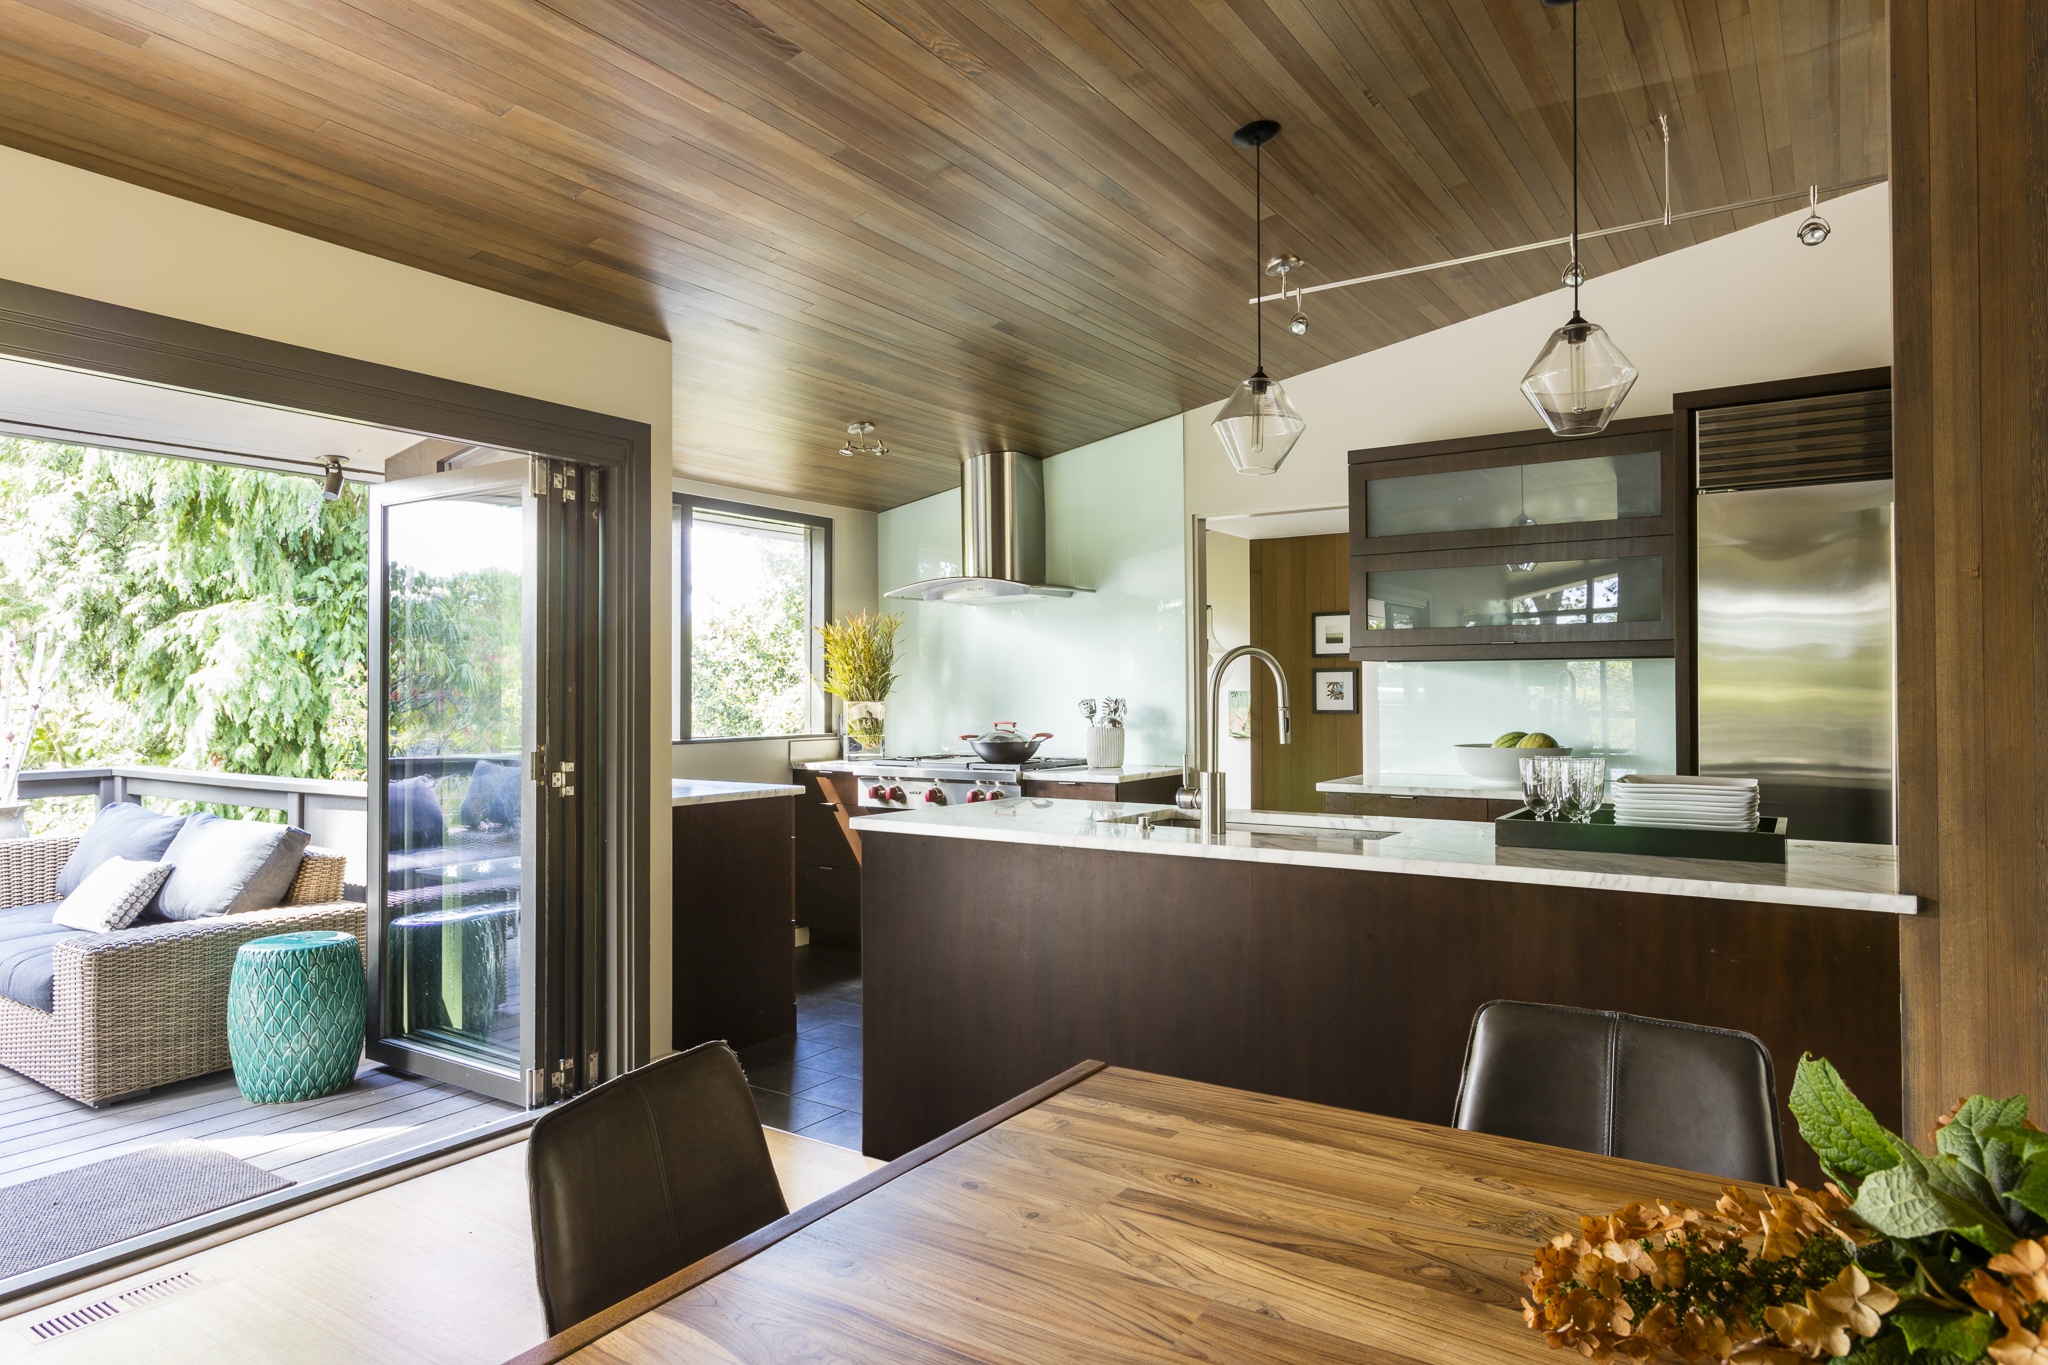 paul-moon-design-windermere-contemporary-kitchen-exterior.jpg